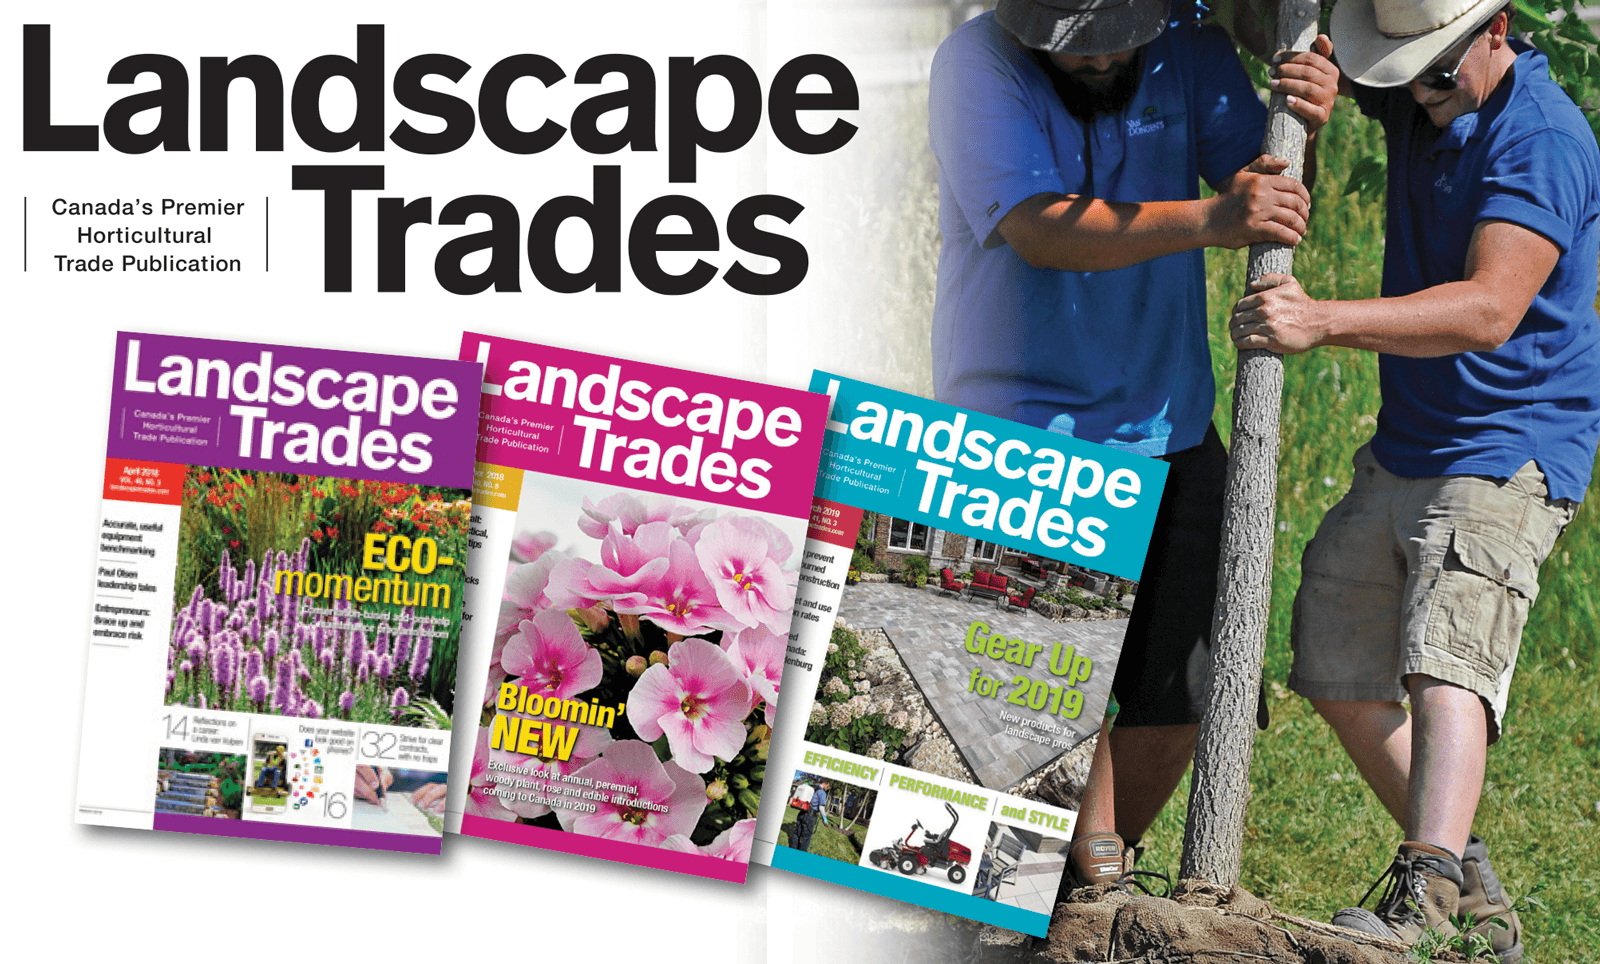 Landscape Trades - Contact and Advertising Info - Landscape Ontario